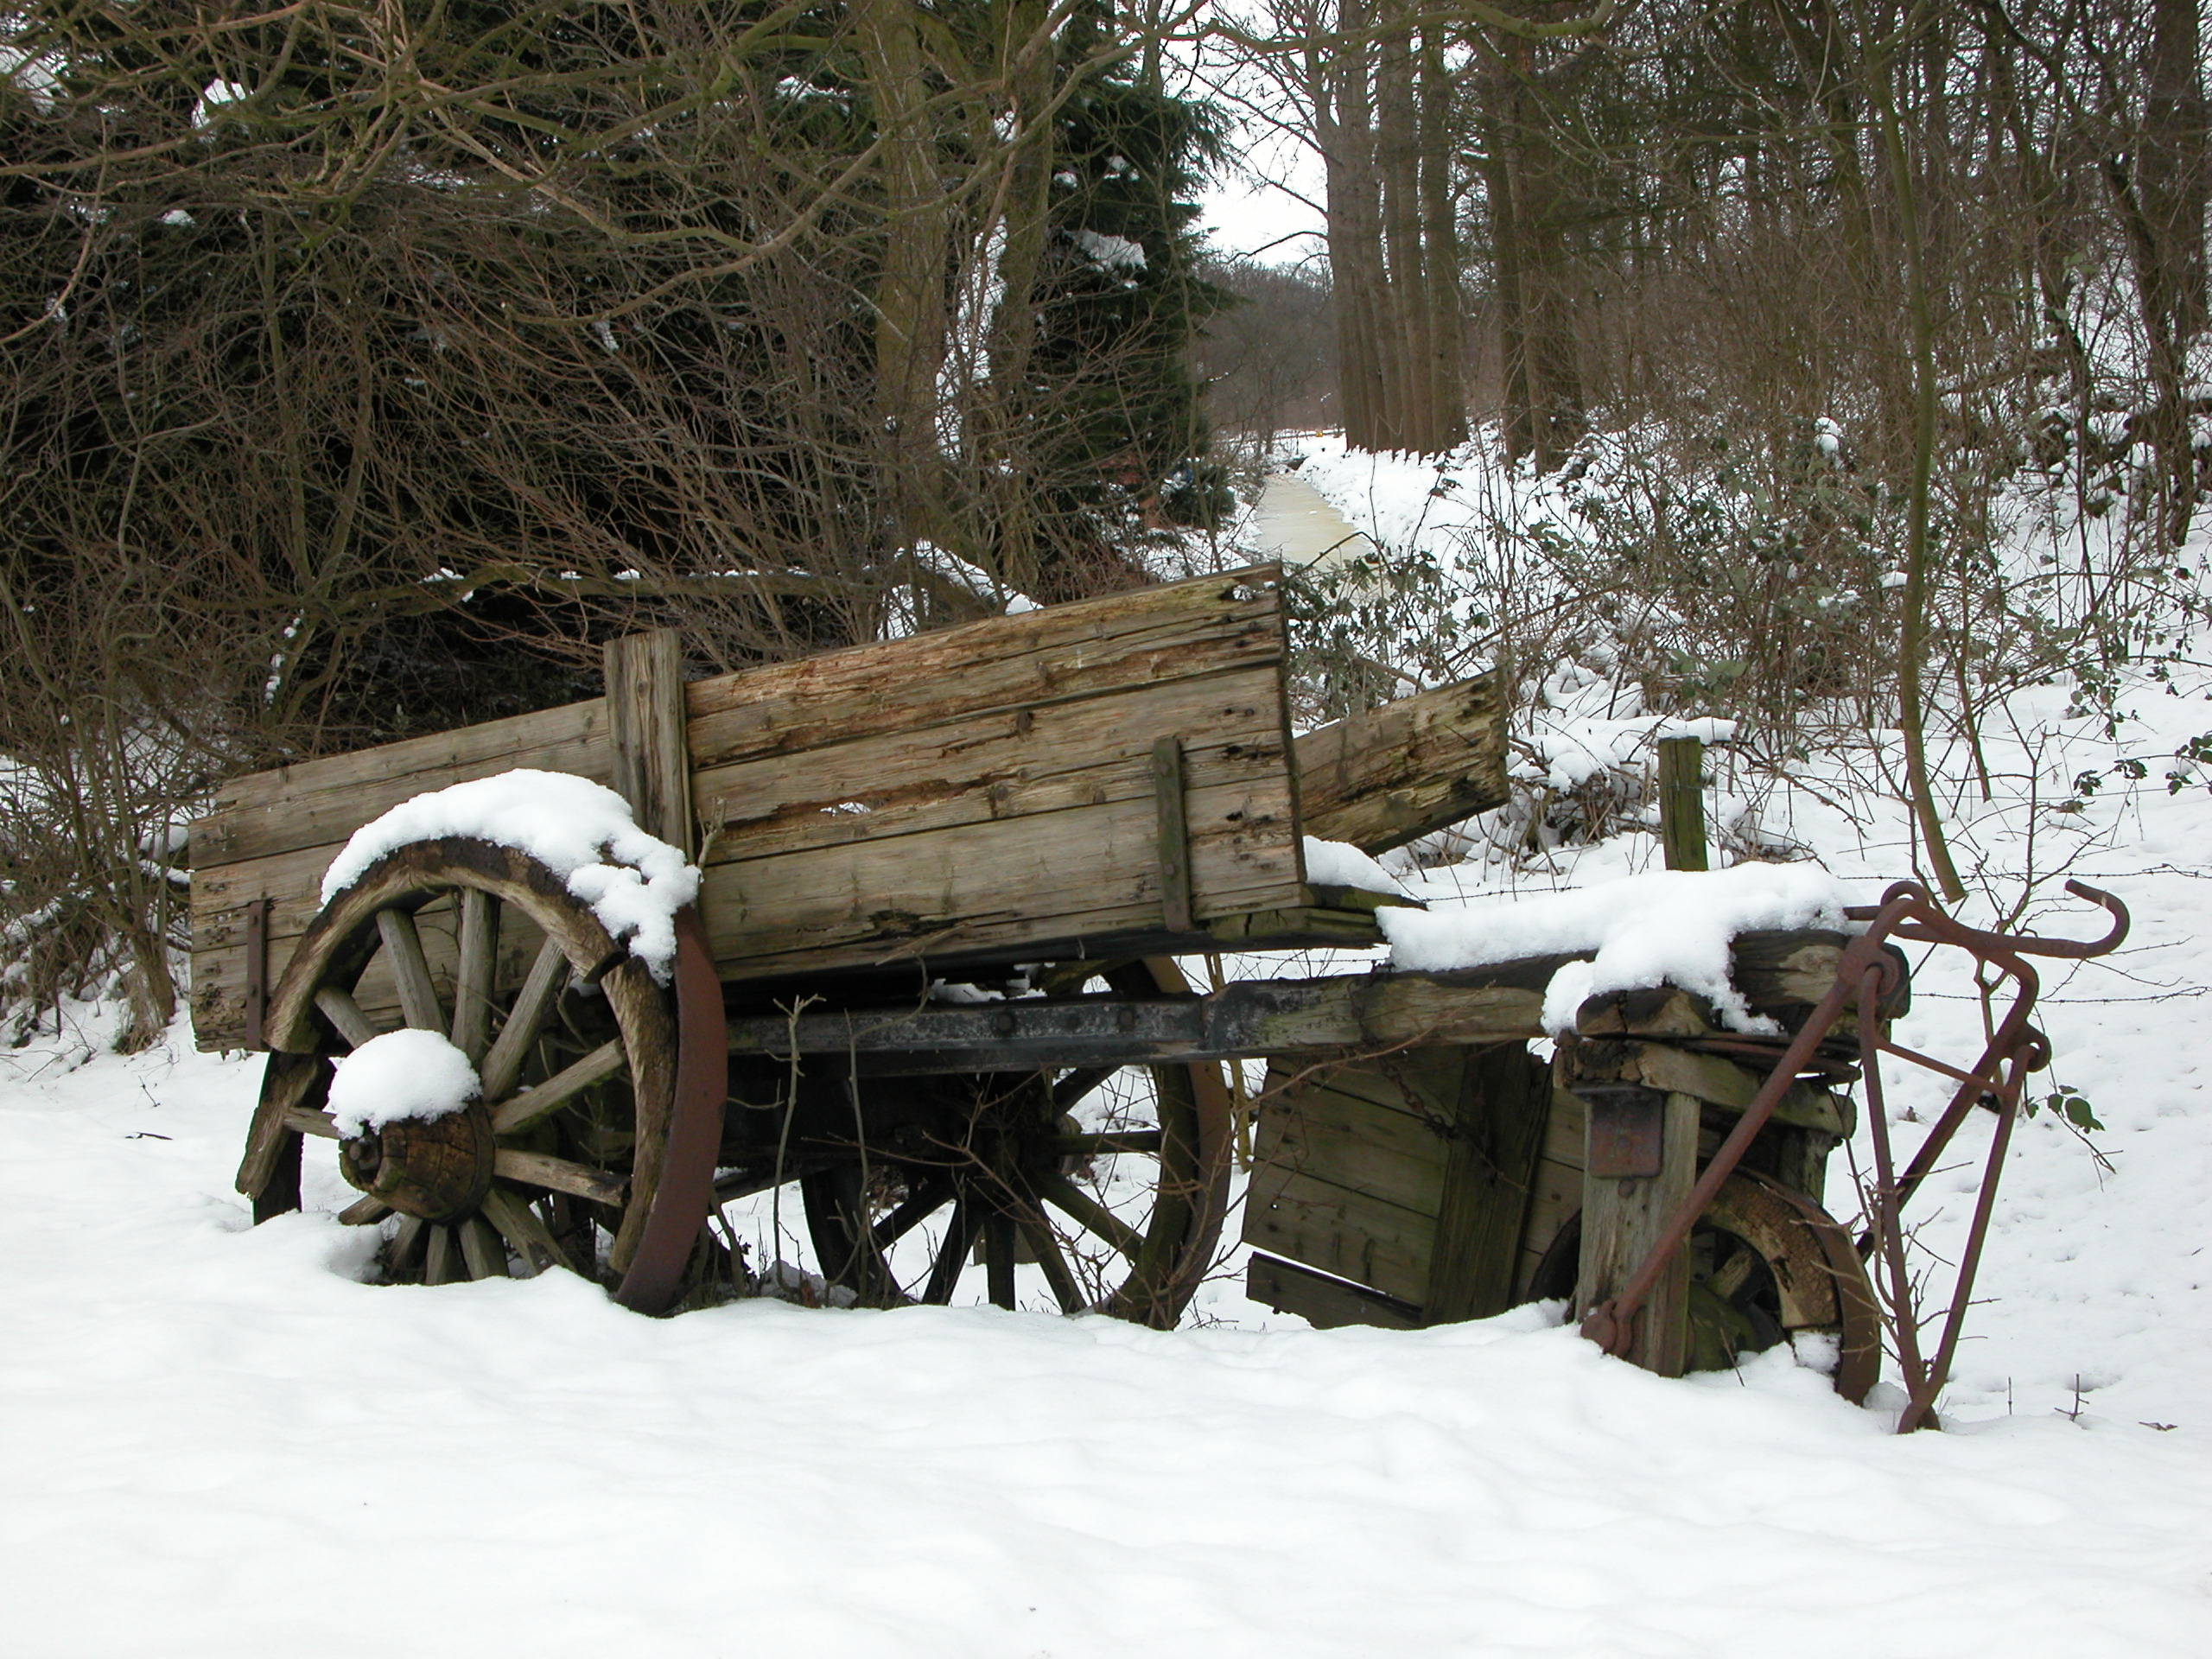 old cart in the snow winter